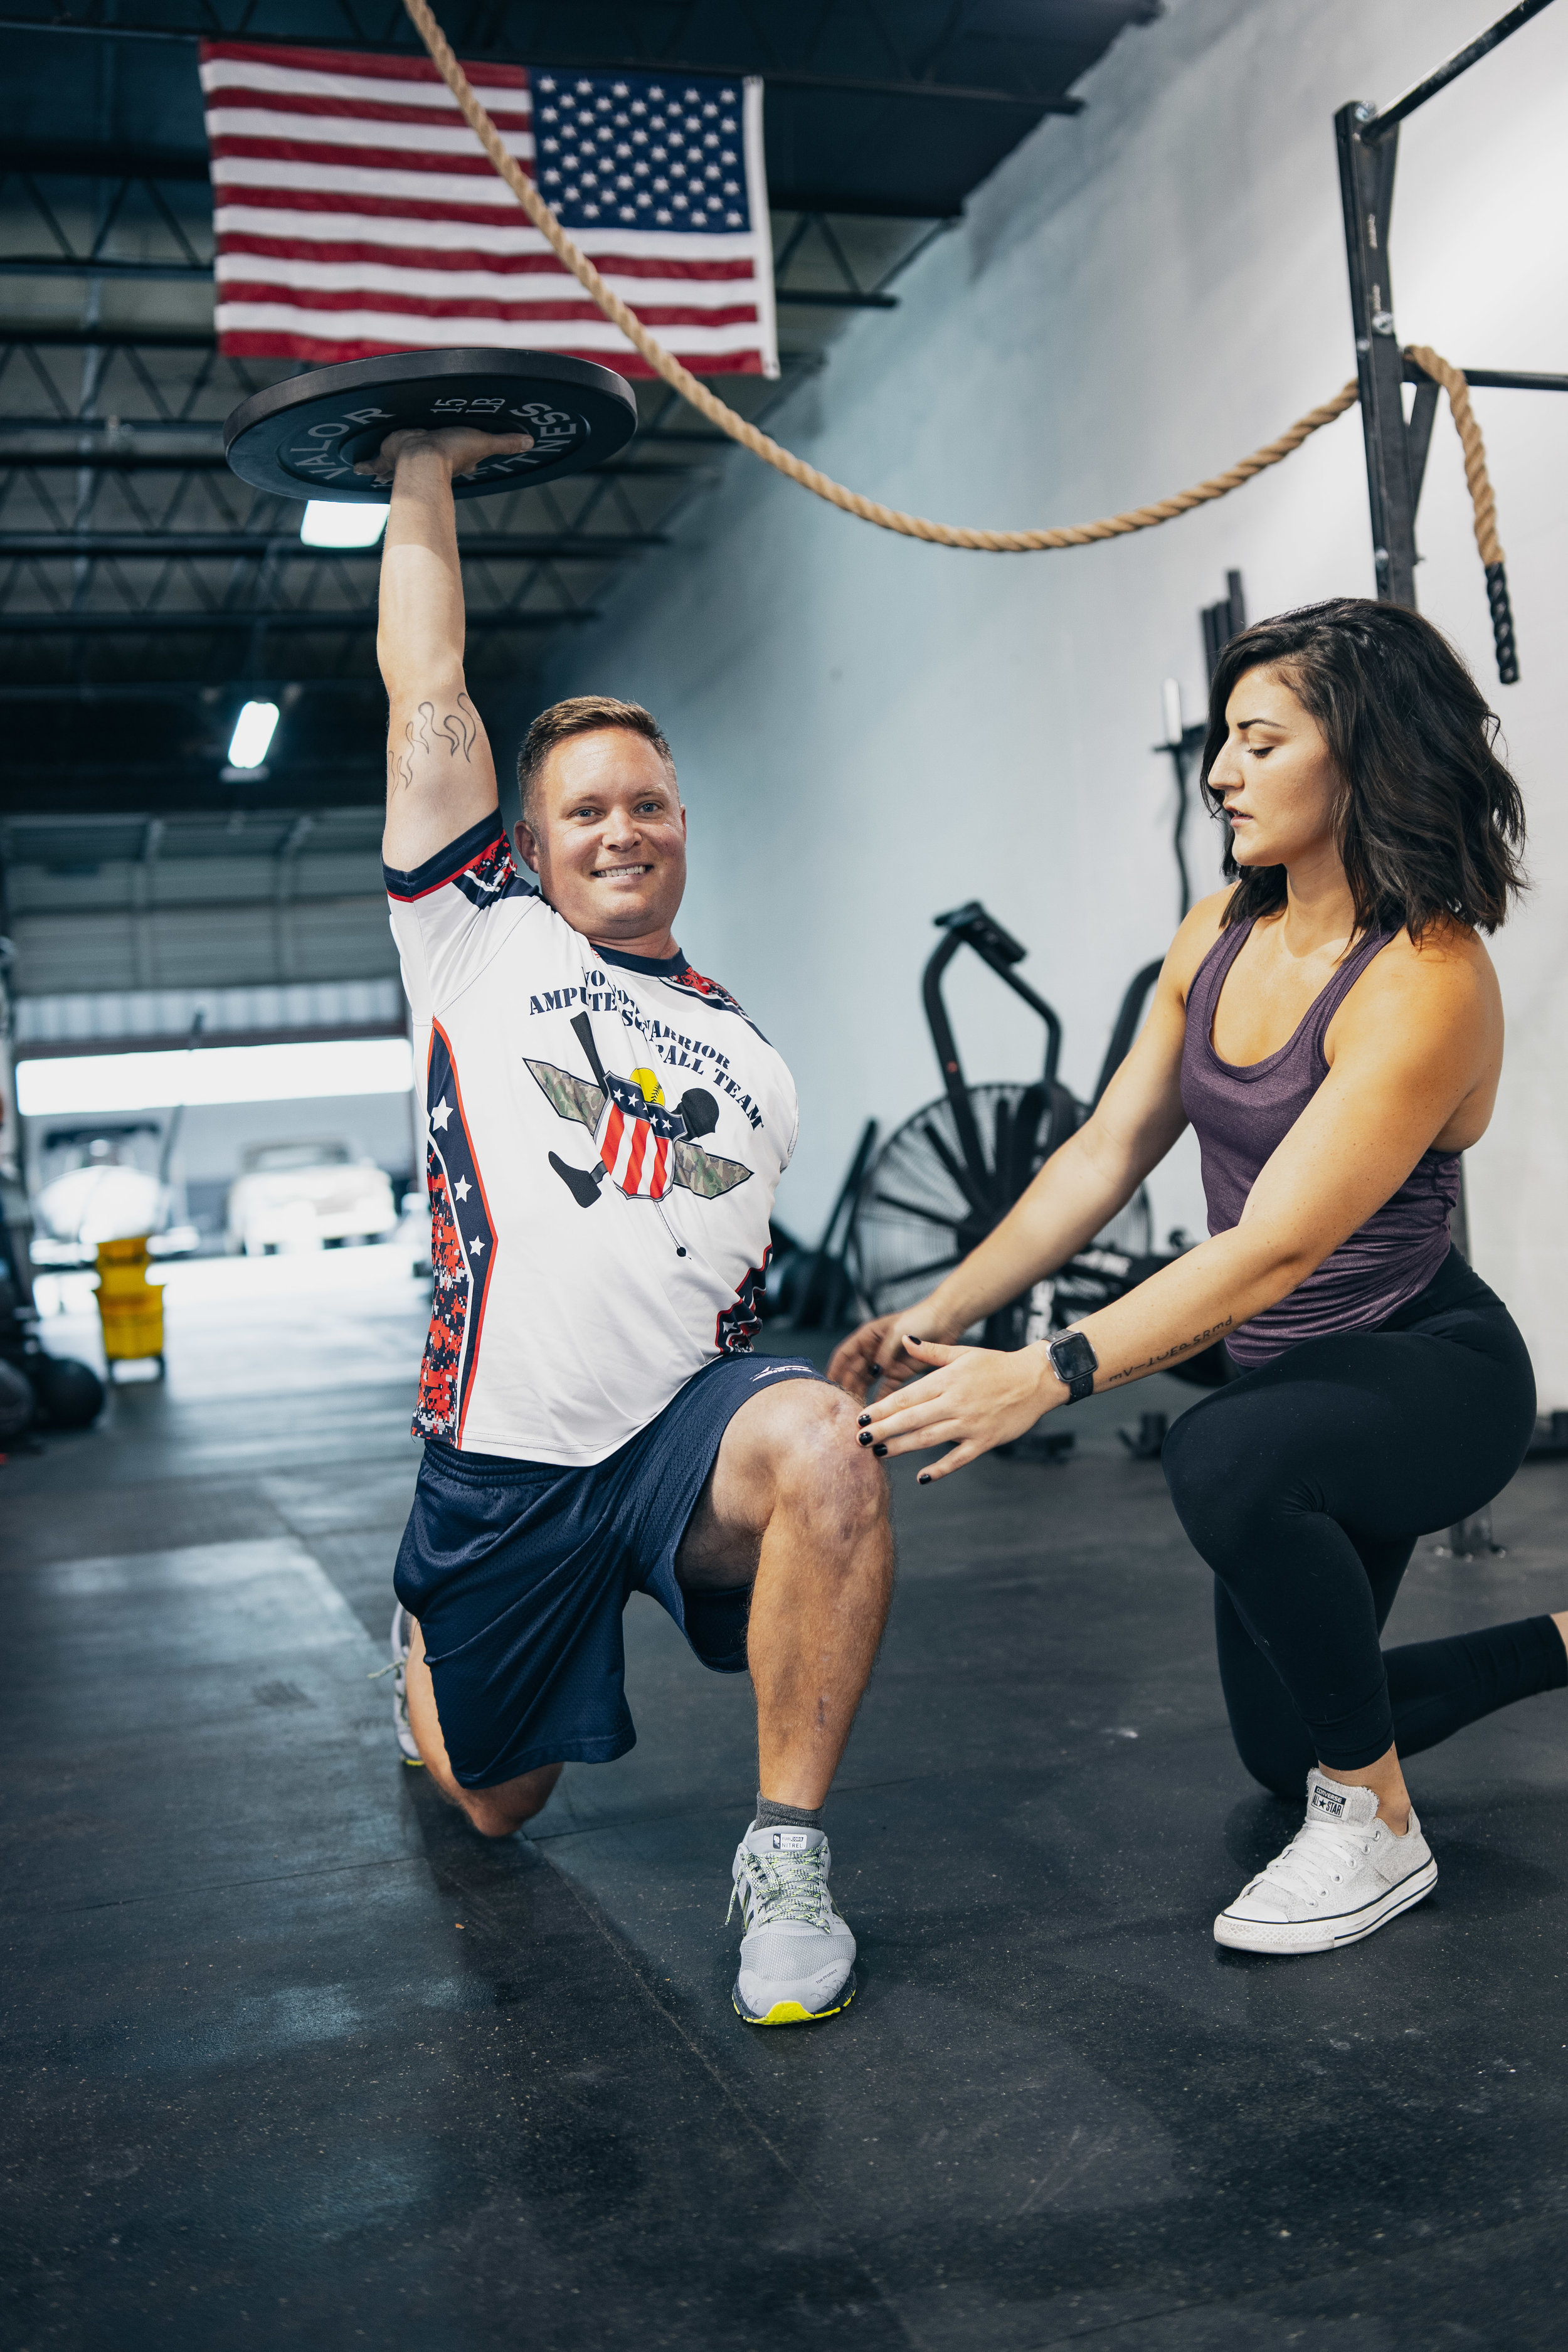 GAME OF STRENGTH - Get back to the basics with this class where programming involves periodization allowing for members to adapt and grow with training intensity and volume without plateauing. Come prepared to be instructed and pushed through lifts targeting the development of your overall strength.